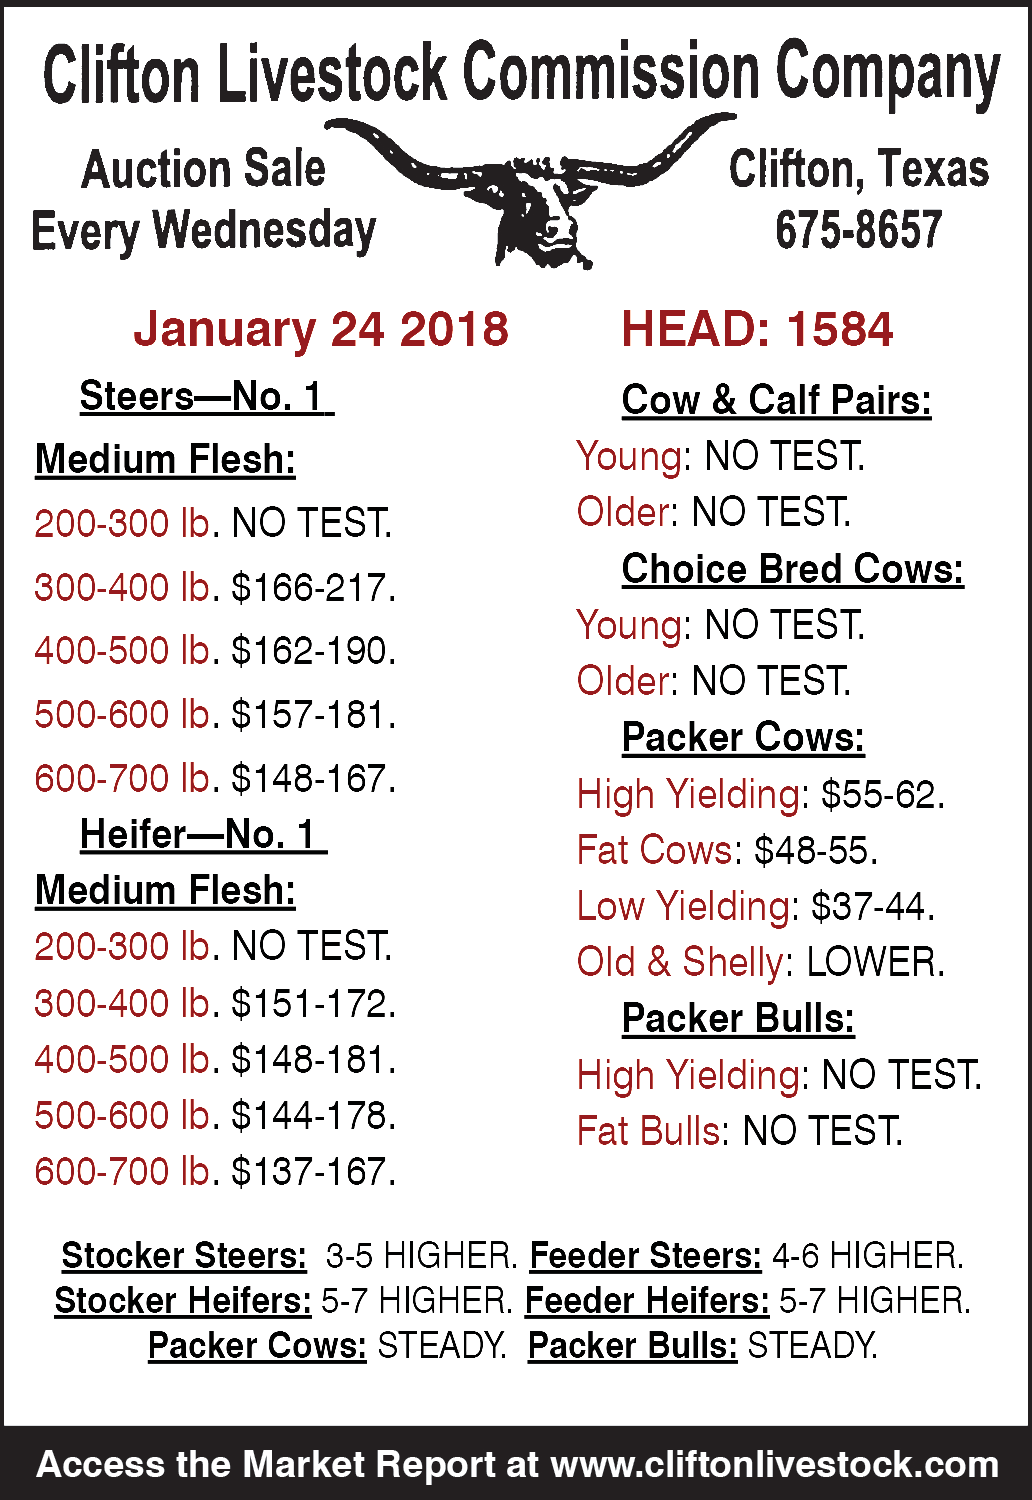 Auction Sale Every Wednesday Texas by Clifton Livestock